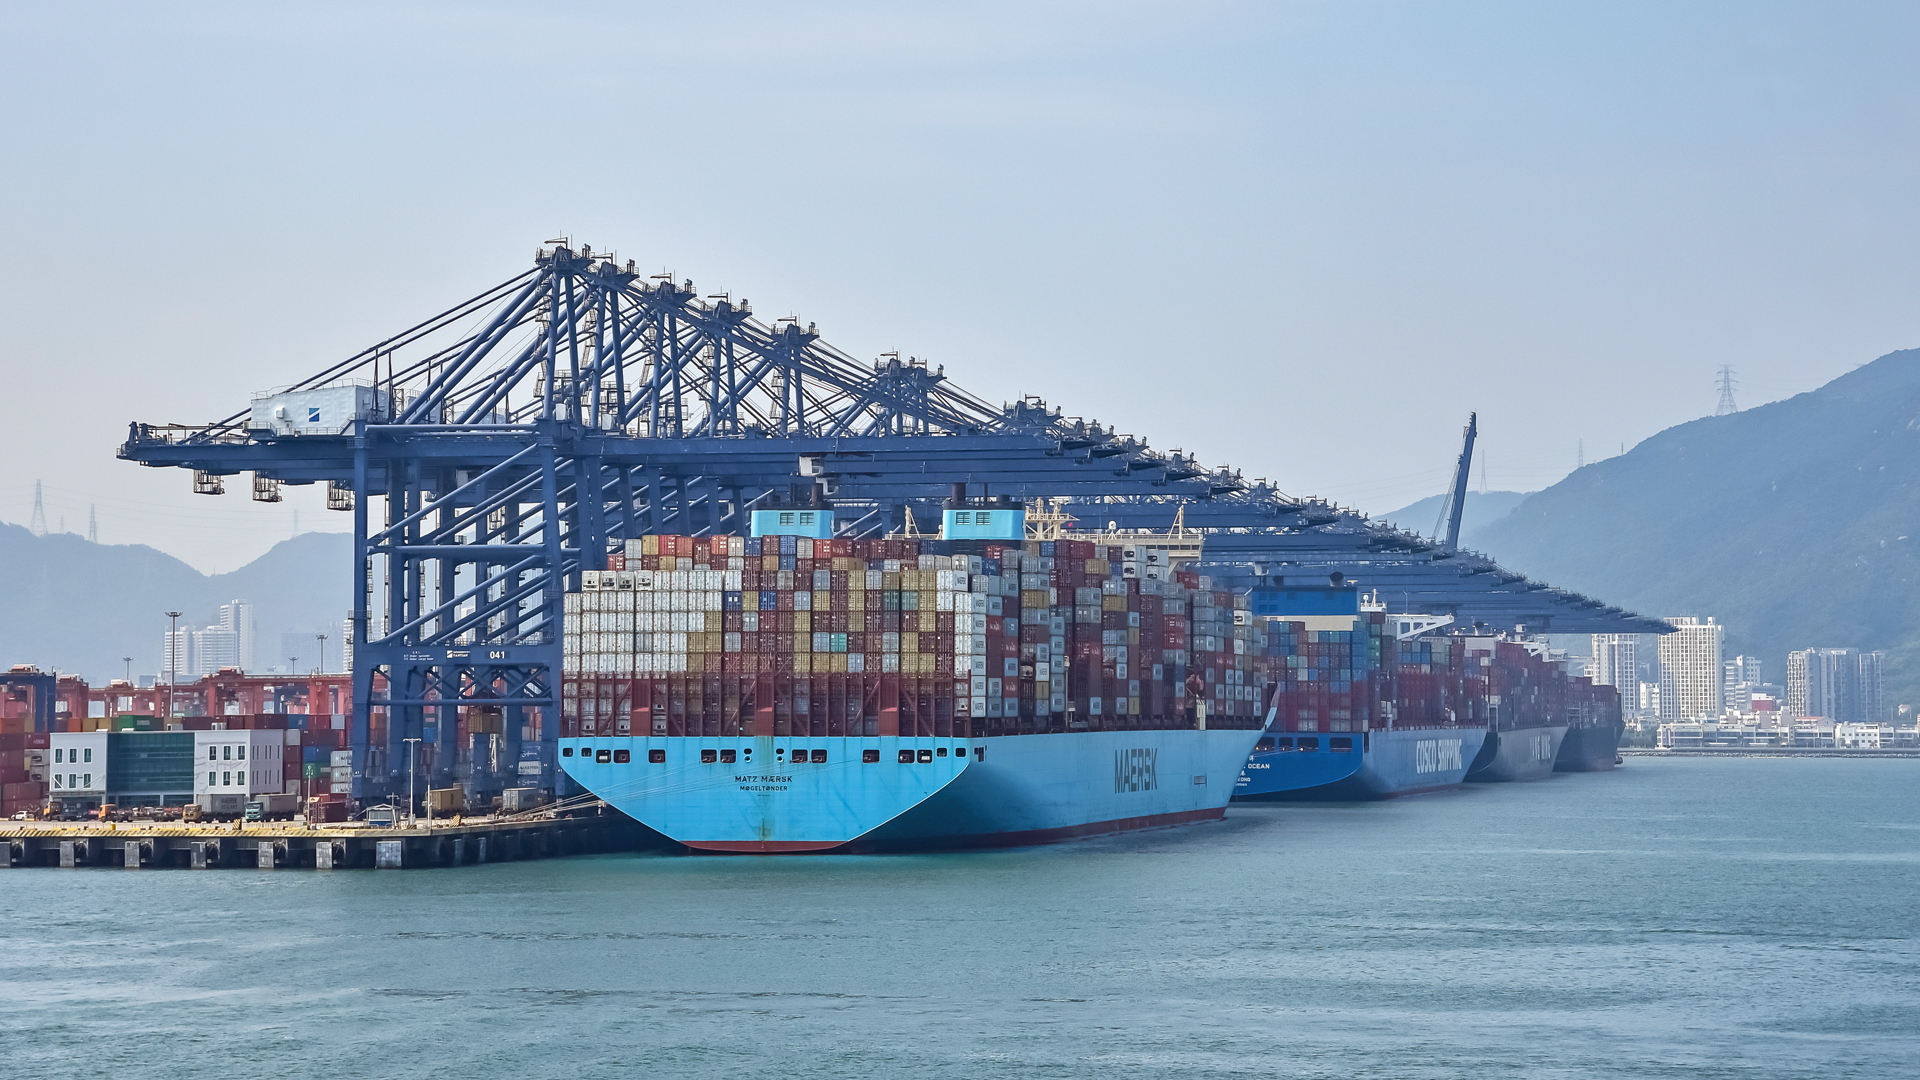 Three big container vessels in a row at a port terminal, with cranes overhead.